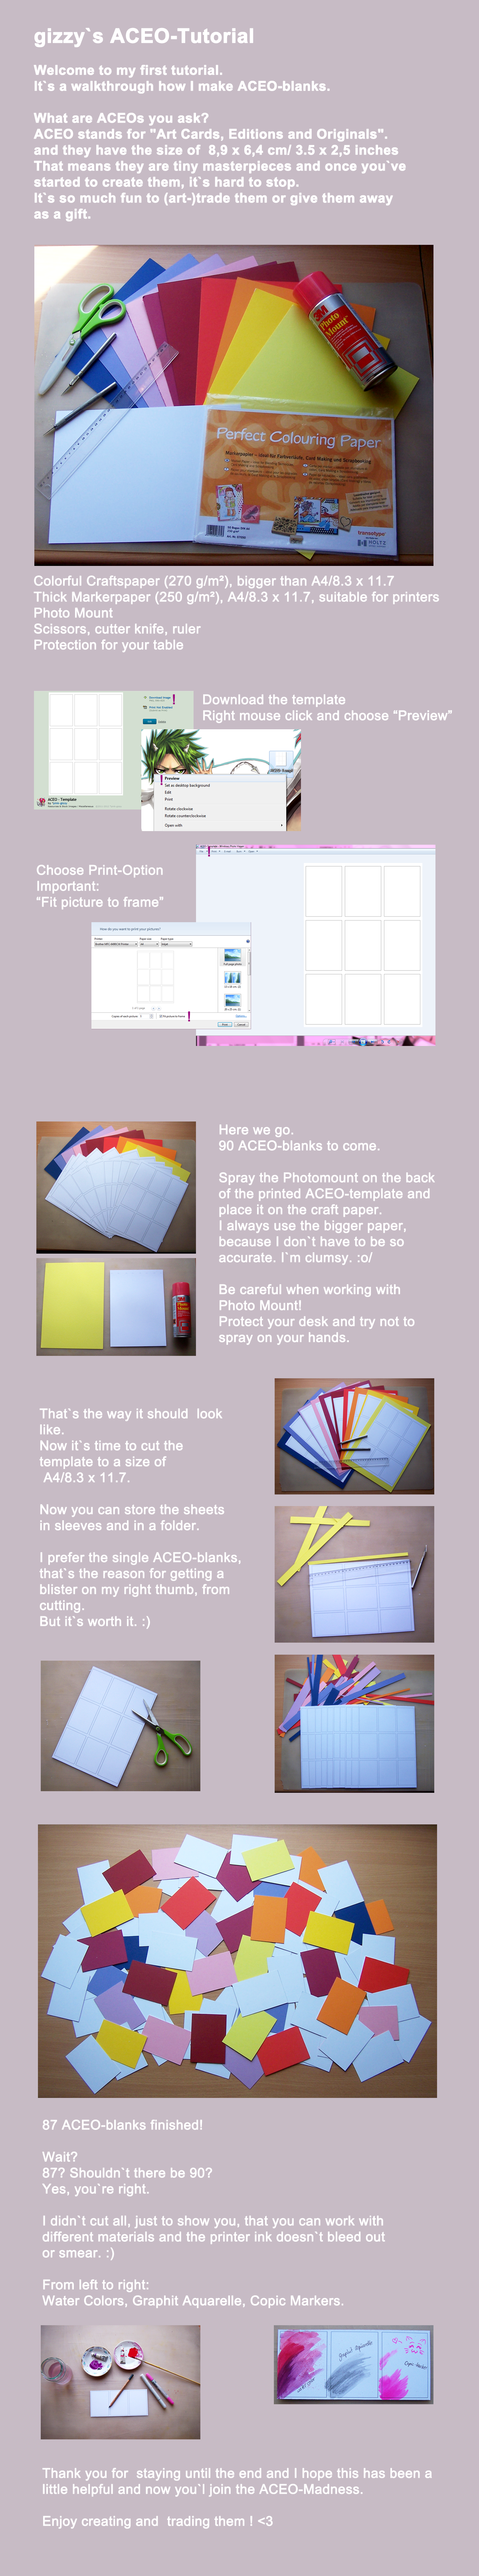 ACEO-Blanks Tutorial by pink-gizzy